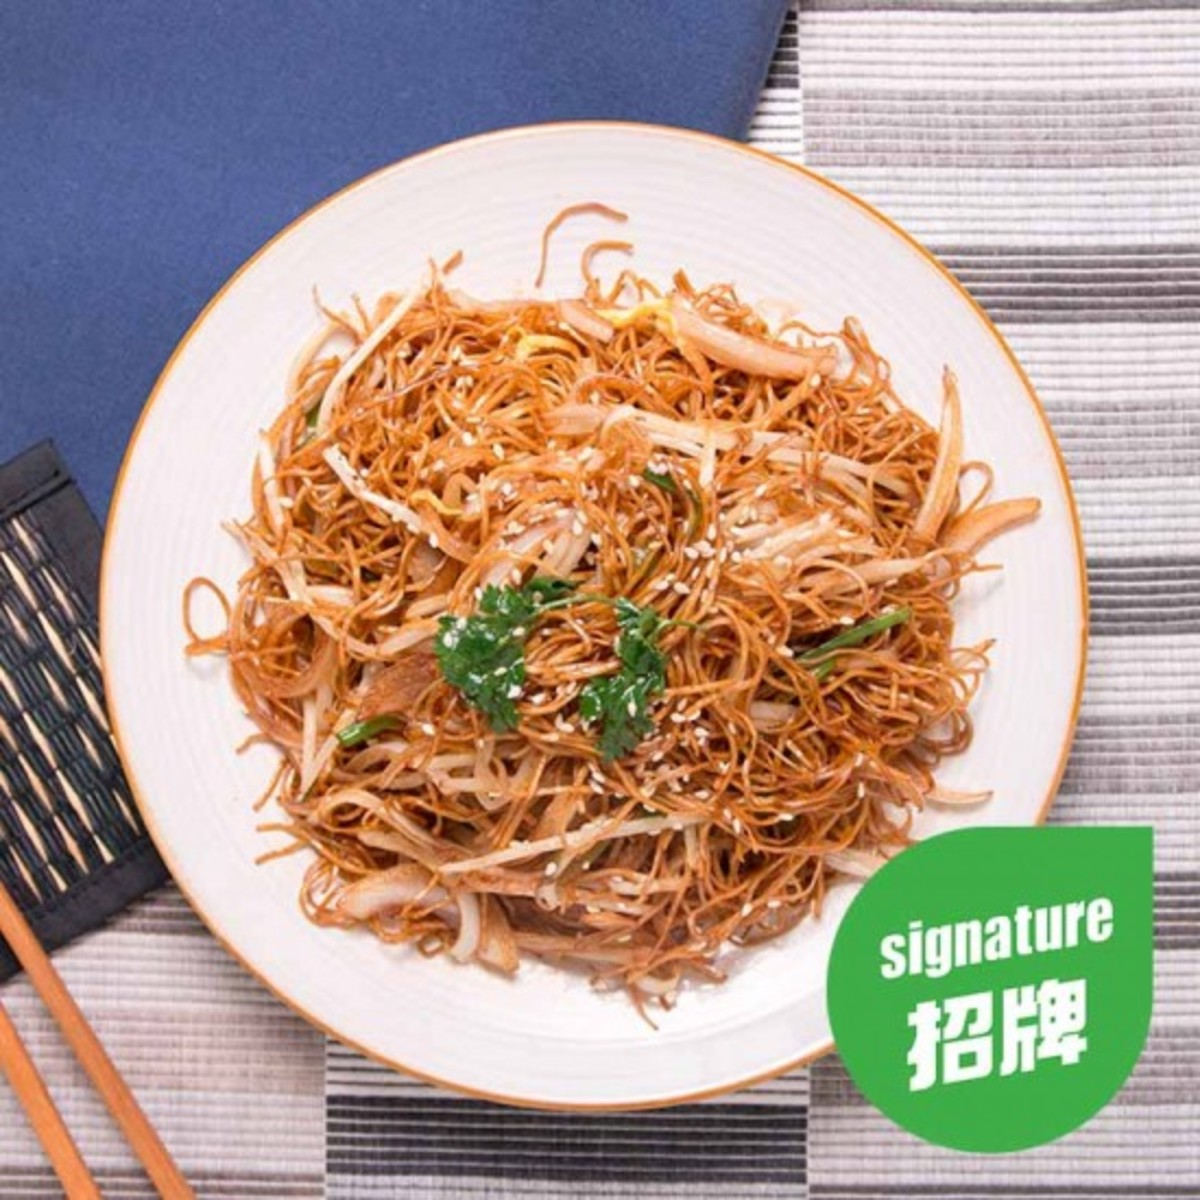 Stir Fried Noodle With Soy Sauce